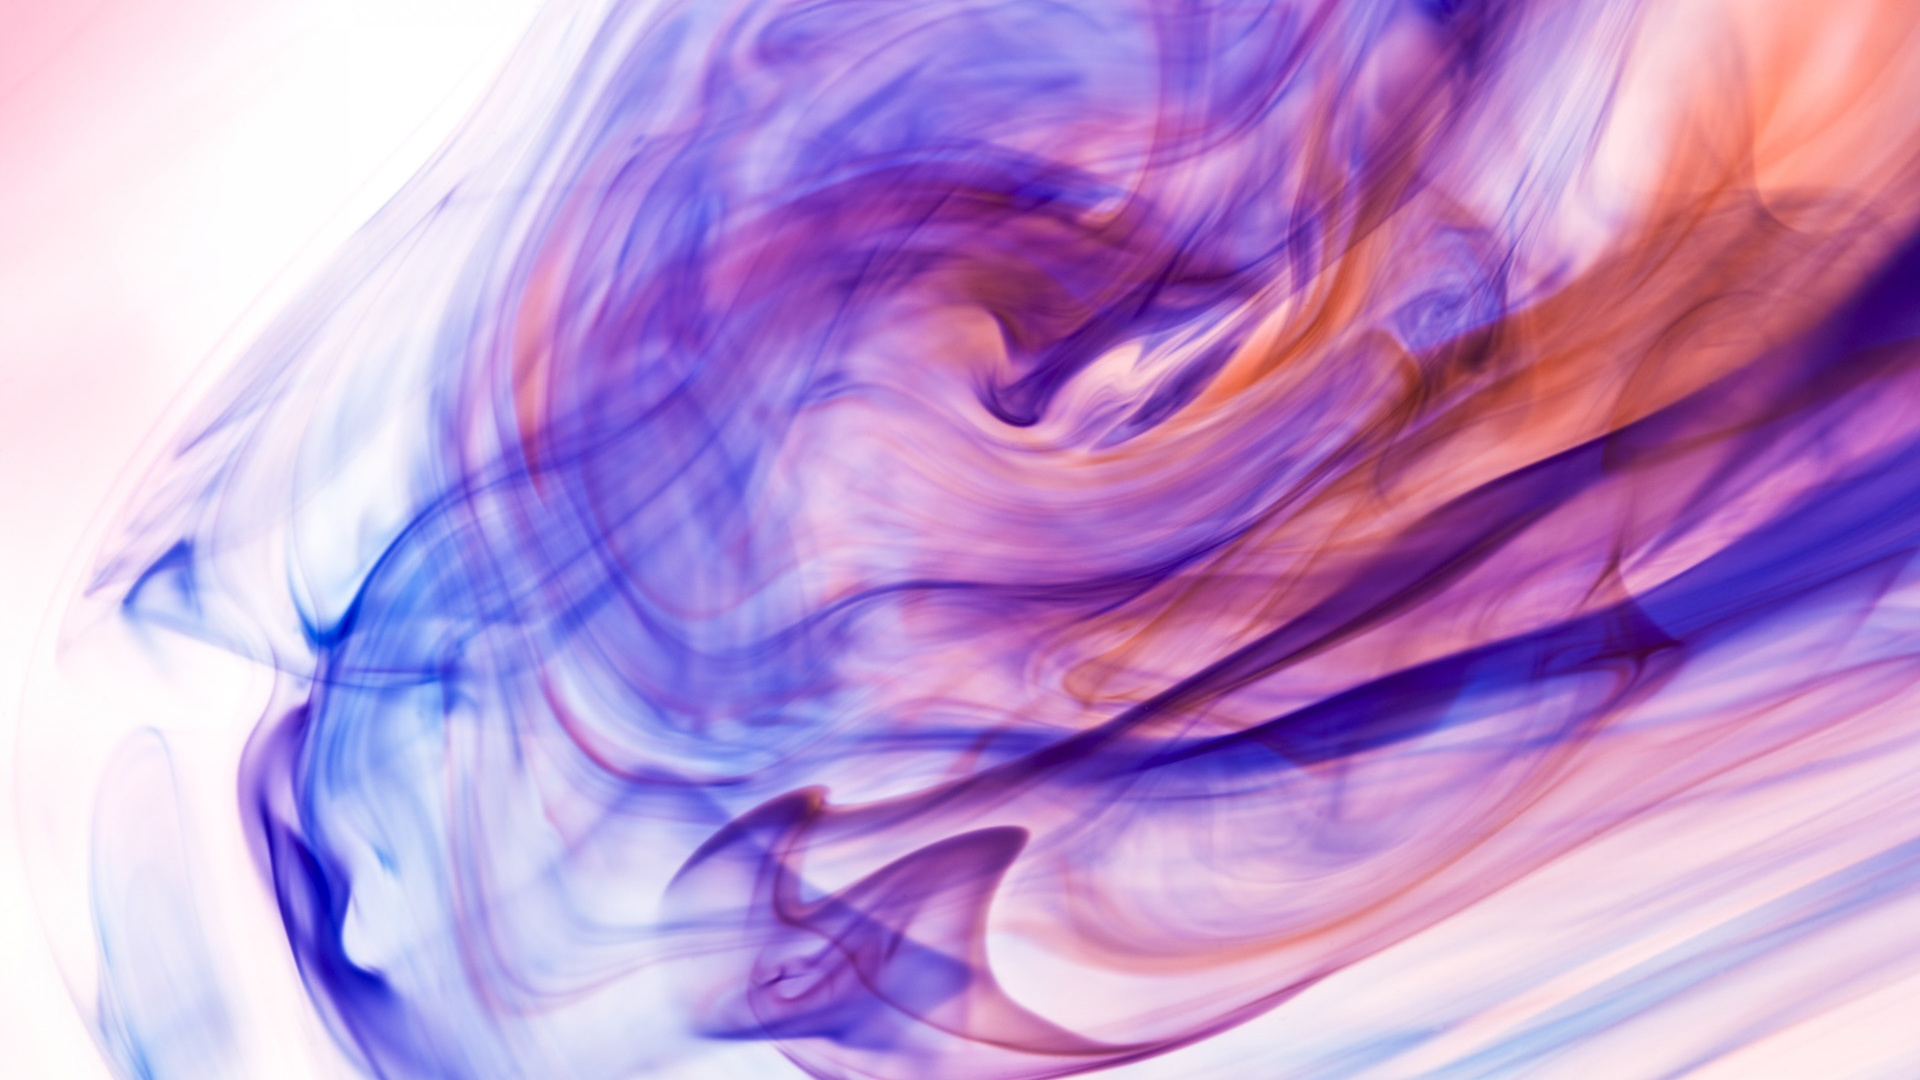 Wallpaper colorful ink in water 1920x1200 hd picture image - Hd ink wallpaper ...